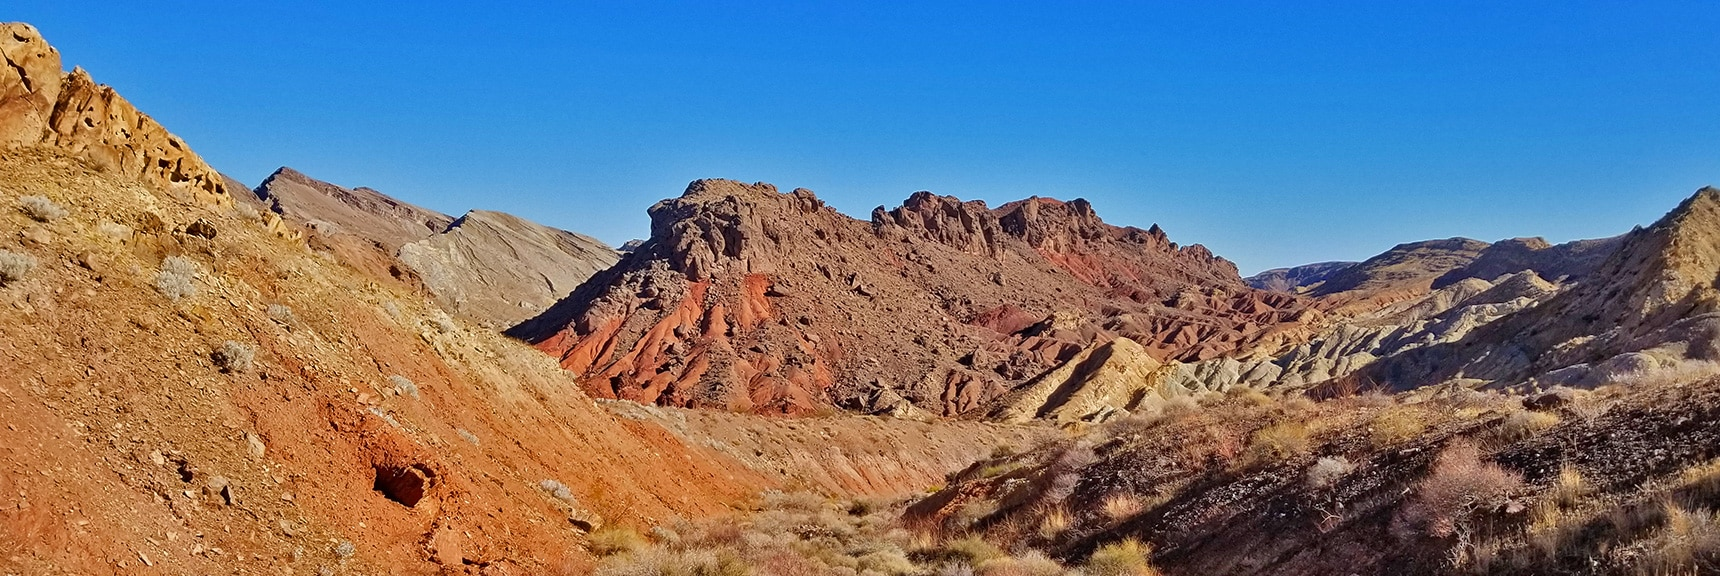 Rugged Terrain in the Hamblin Mt. Area Formed by Water's Action | Hamblin Mountain, Lake Mead National Conservation Area, Nevada